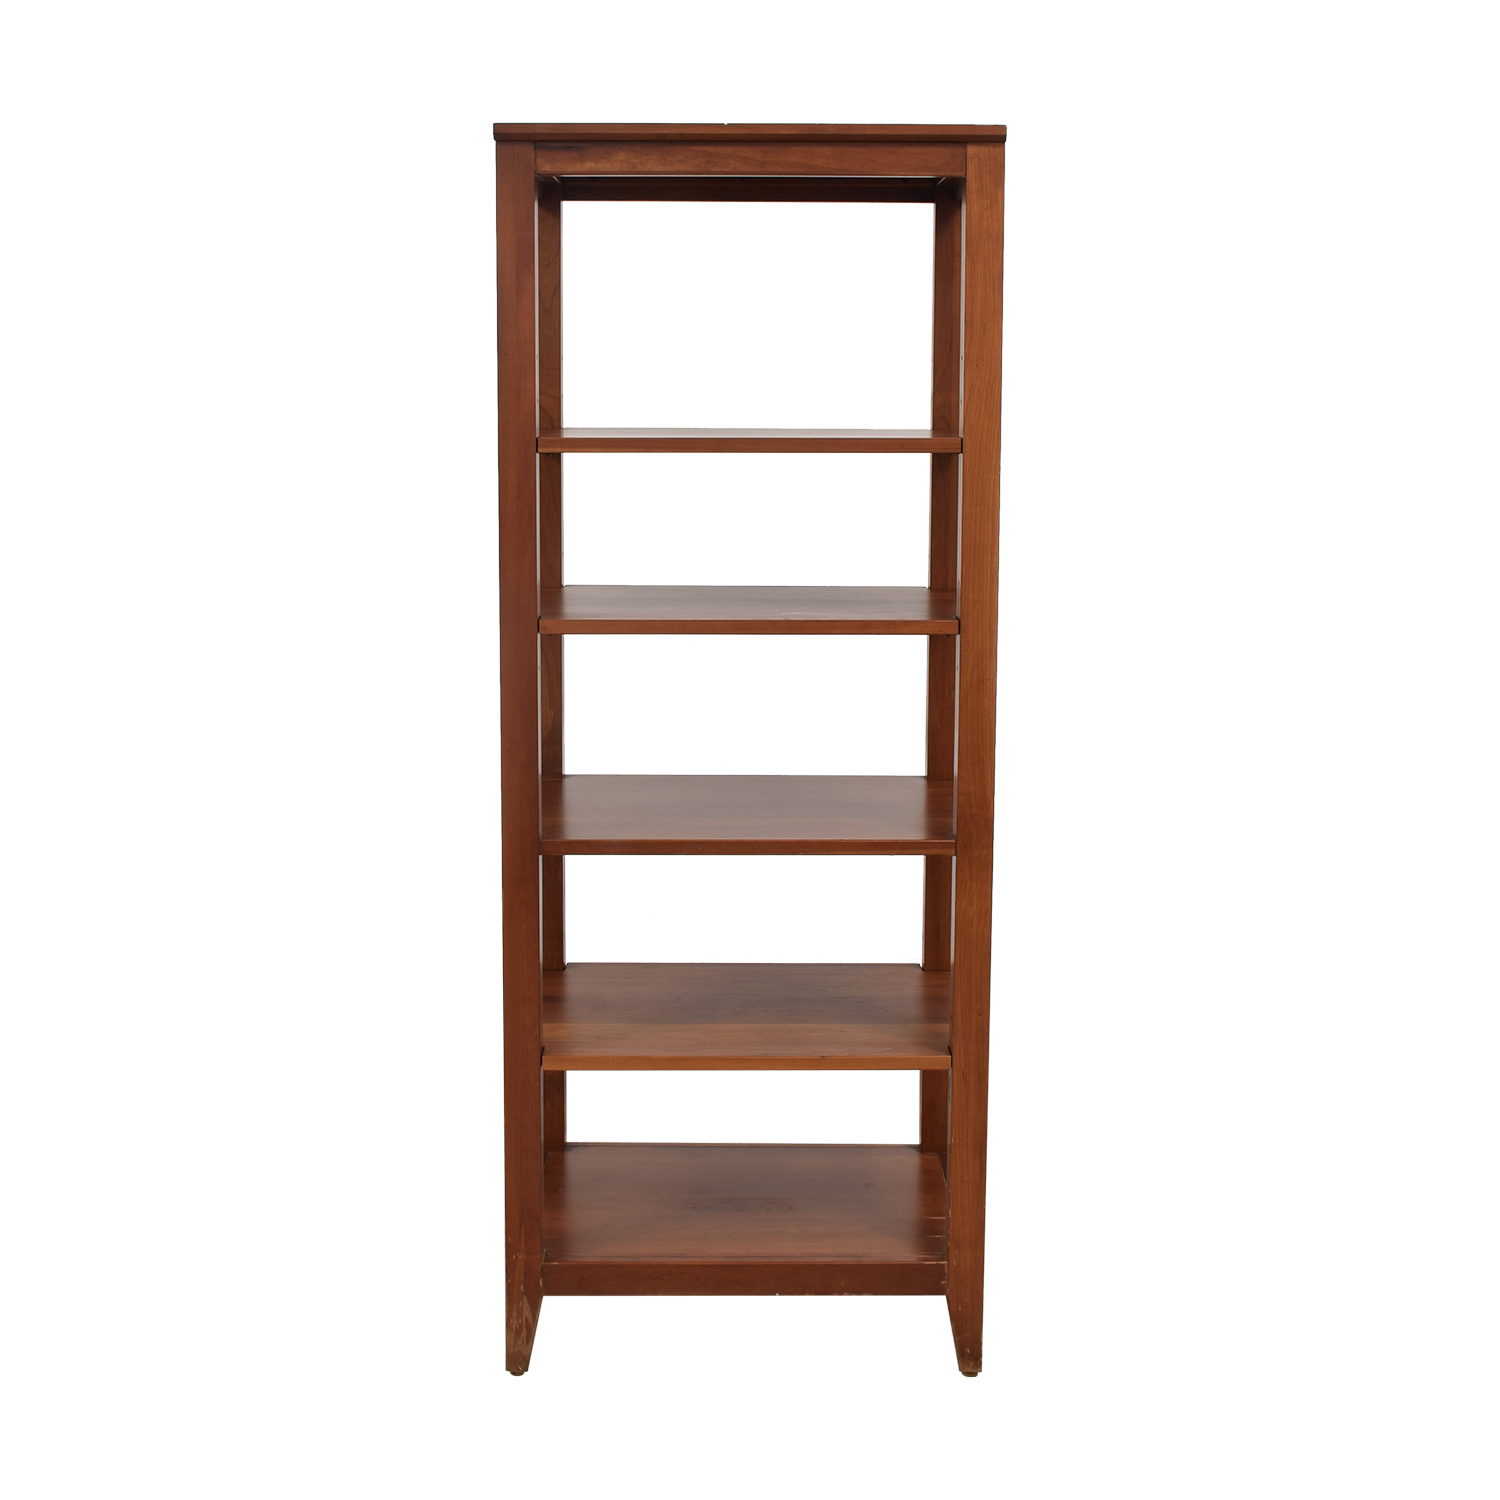 Ethan Allen Ethan Allen Tower Shelf coupon